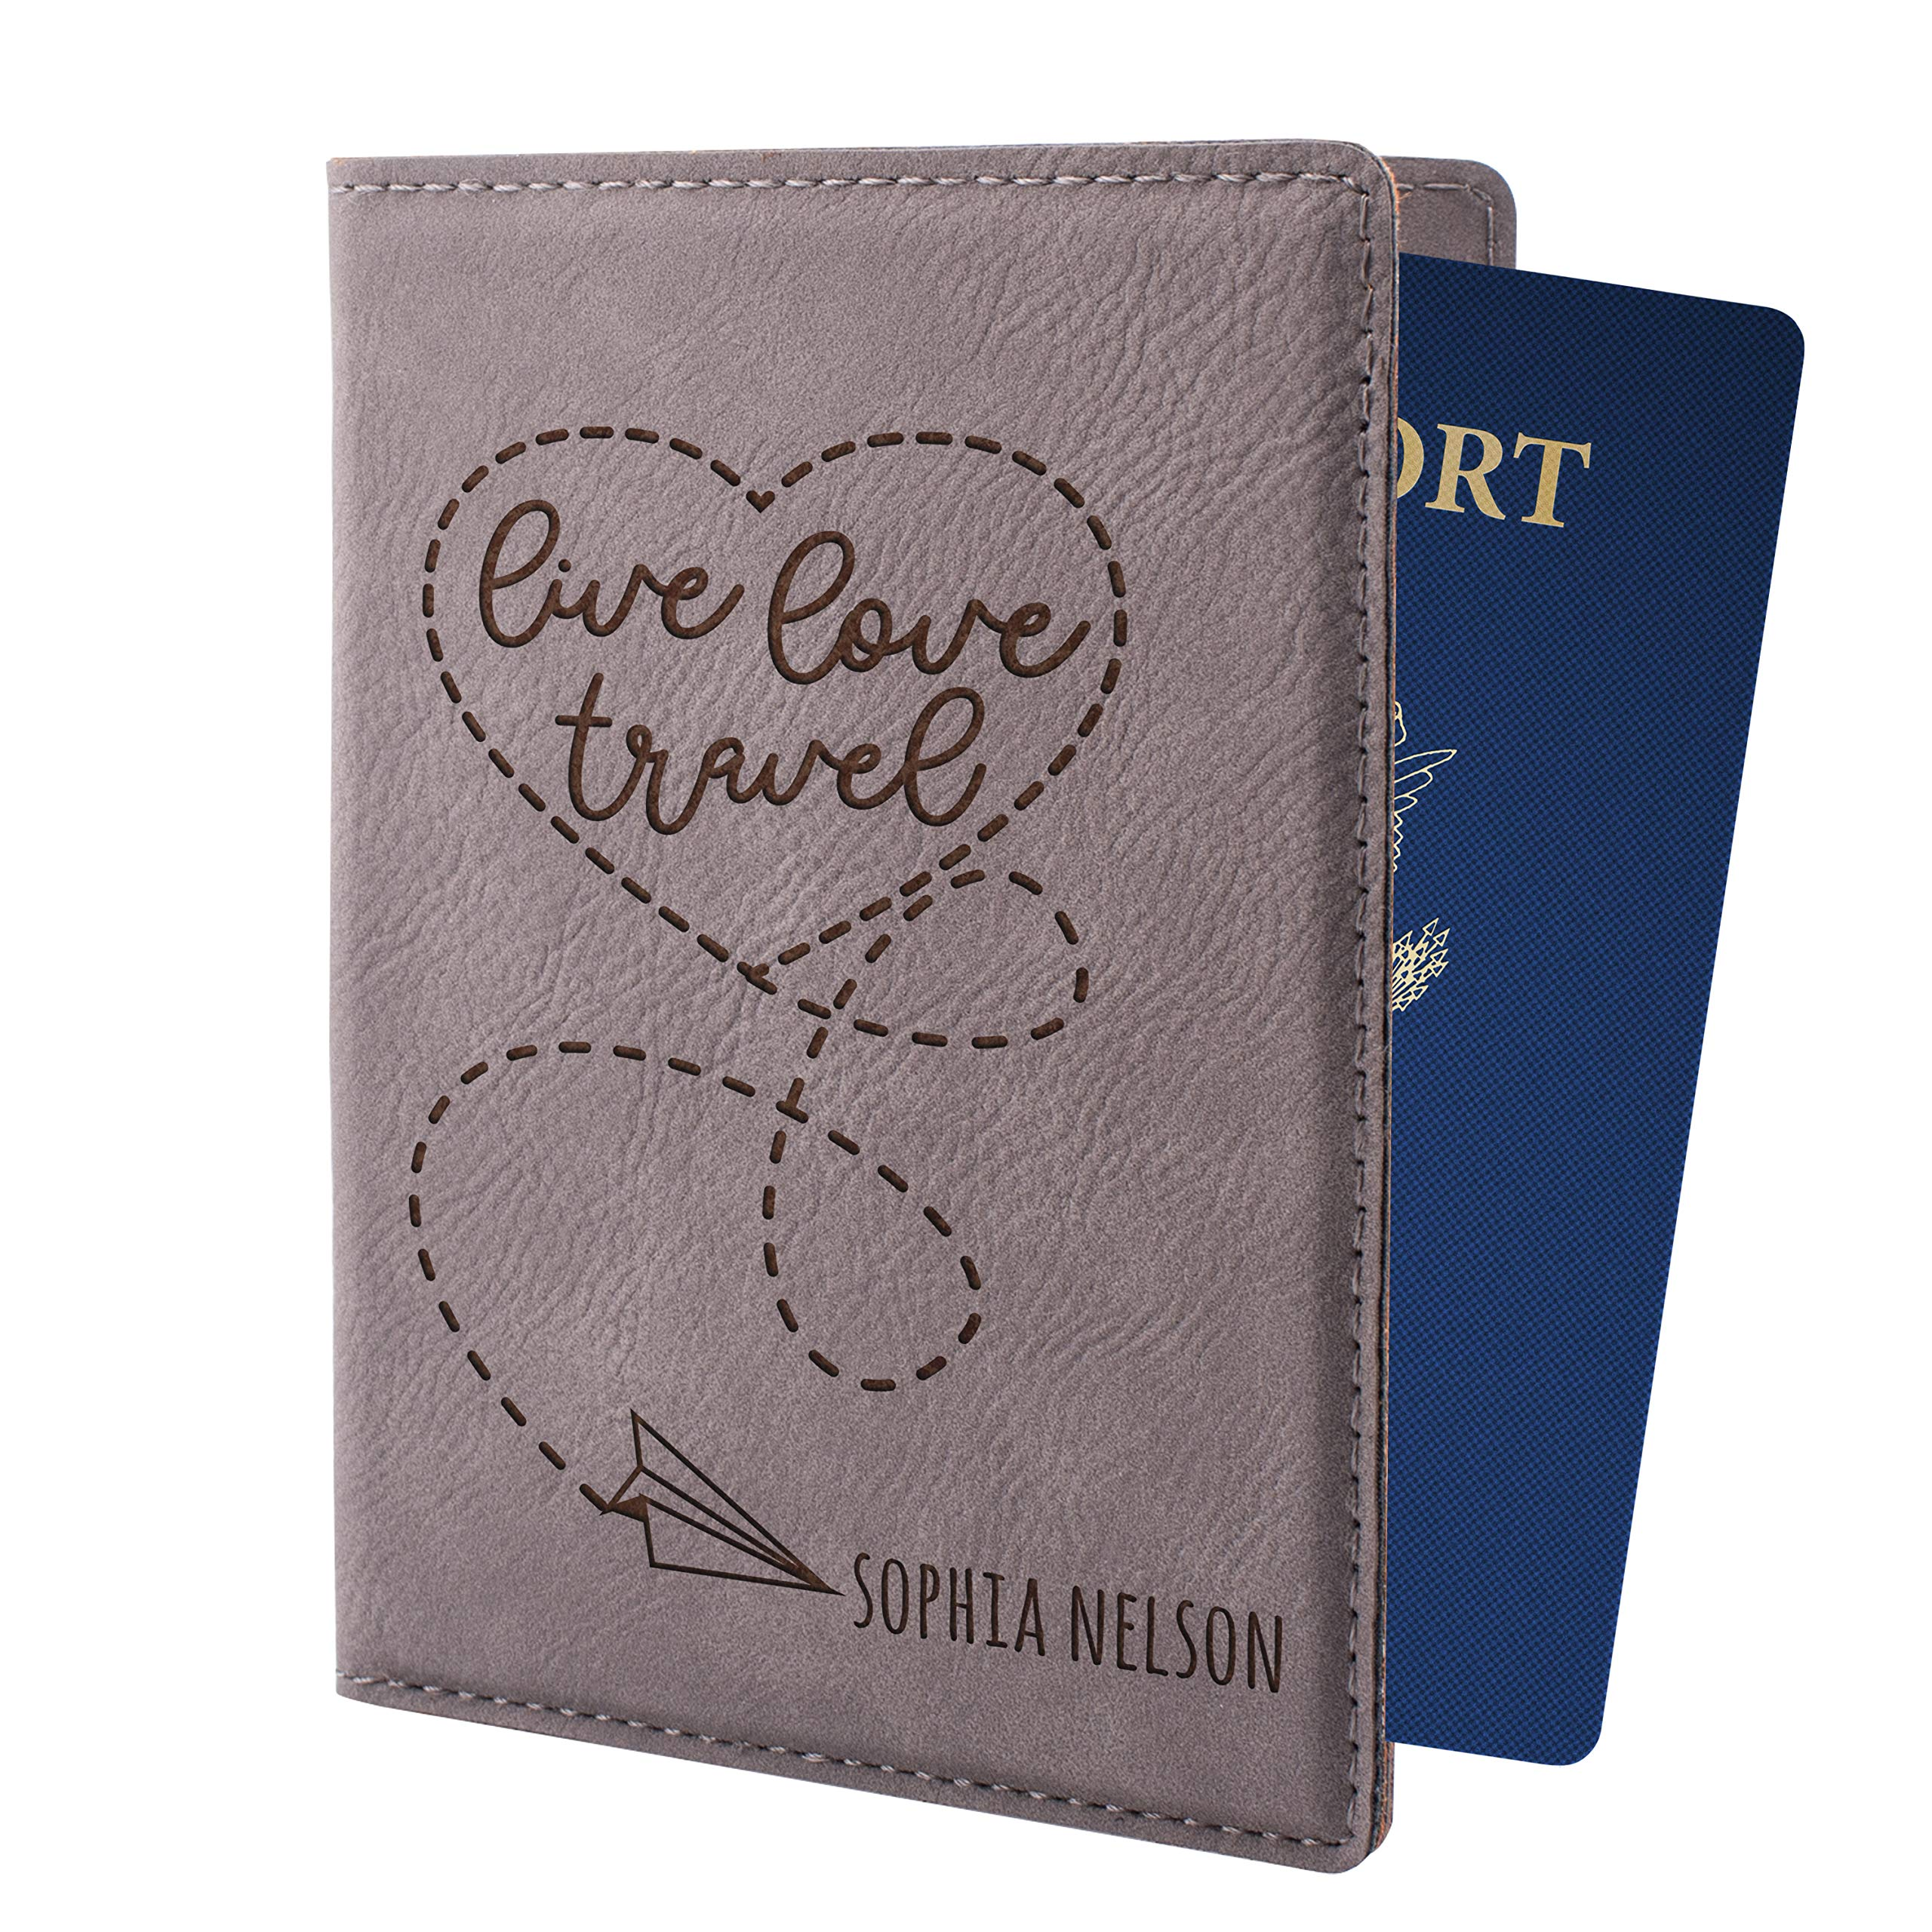 Personalized Passport Holder for Women Man Custom Passport Cover 8 Different Colors Customizable With Name Christmas Traveler Gifts For Women Men | Live Love Travel